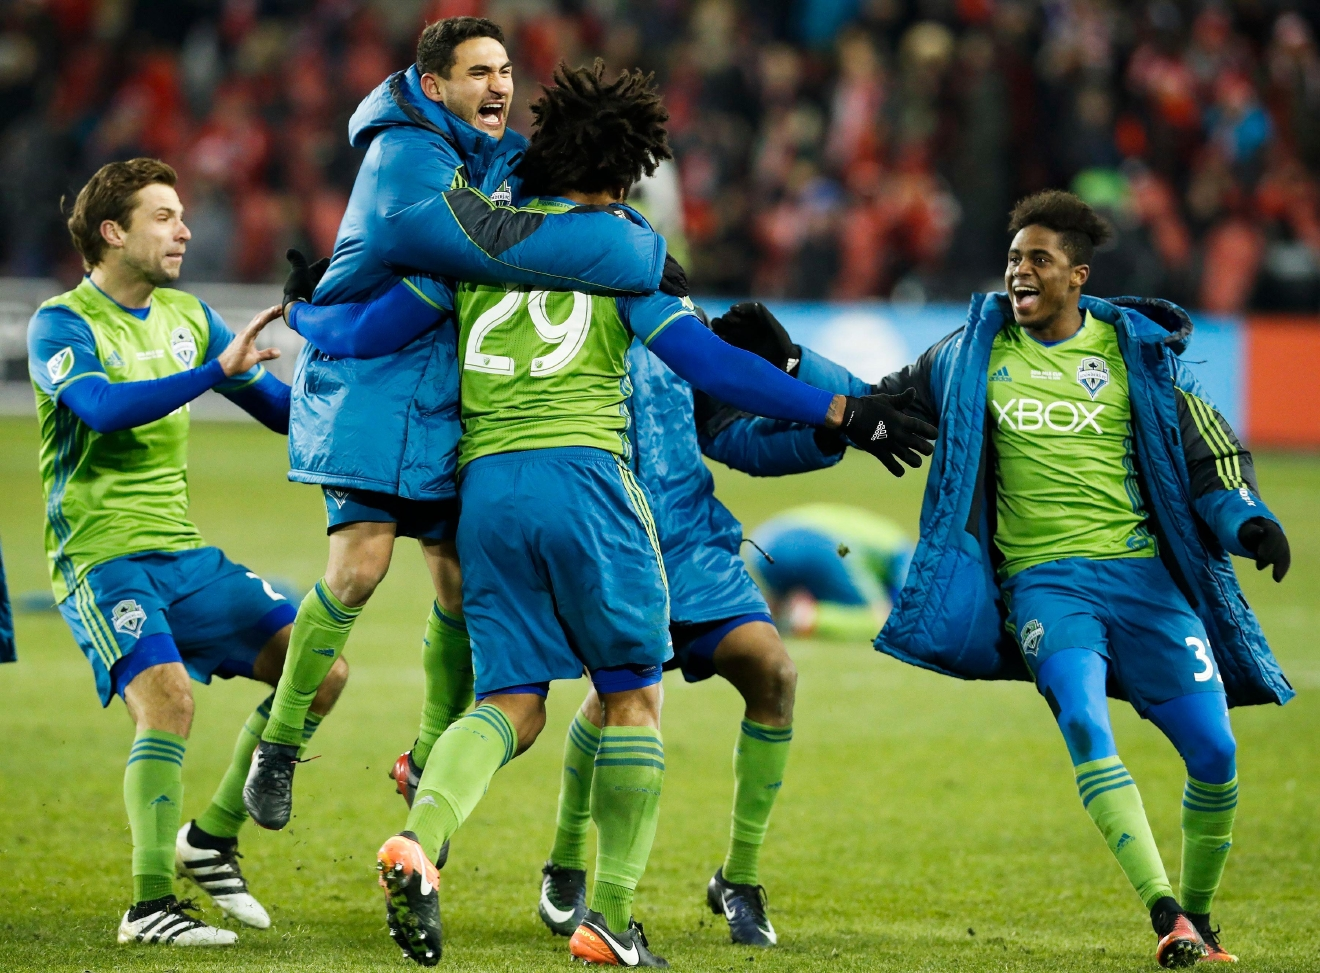 Seattle Sounders teammates congratulate Roman Torres (29) after he scored the winning penalty kick to defeat Toronto FC during a shootout at the MLS Cup soccer final in Toronto, Saturday, Dec. 10, 2016. (Mark Blinch/The Canadian Press via AP)